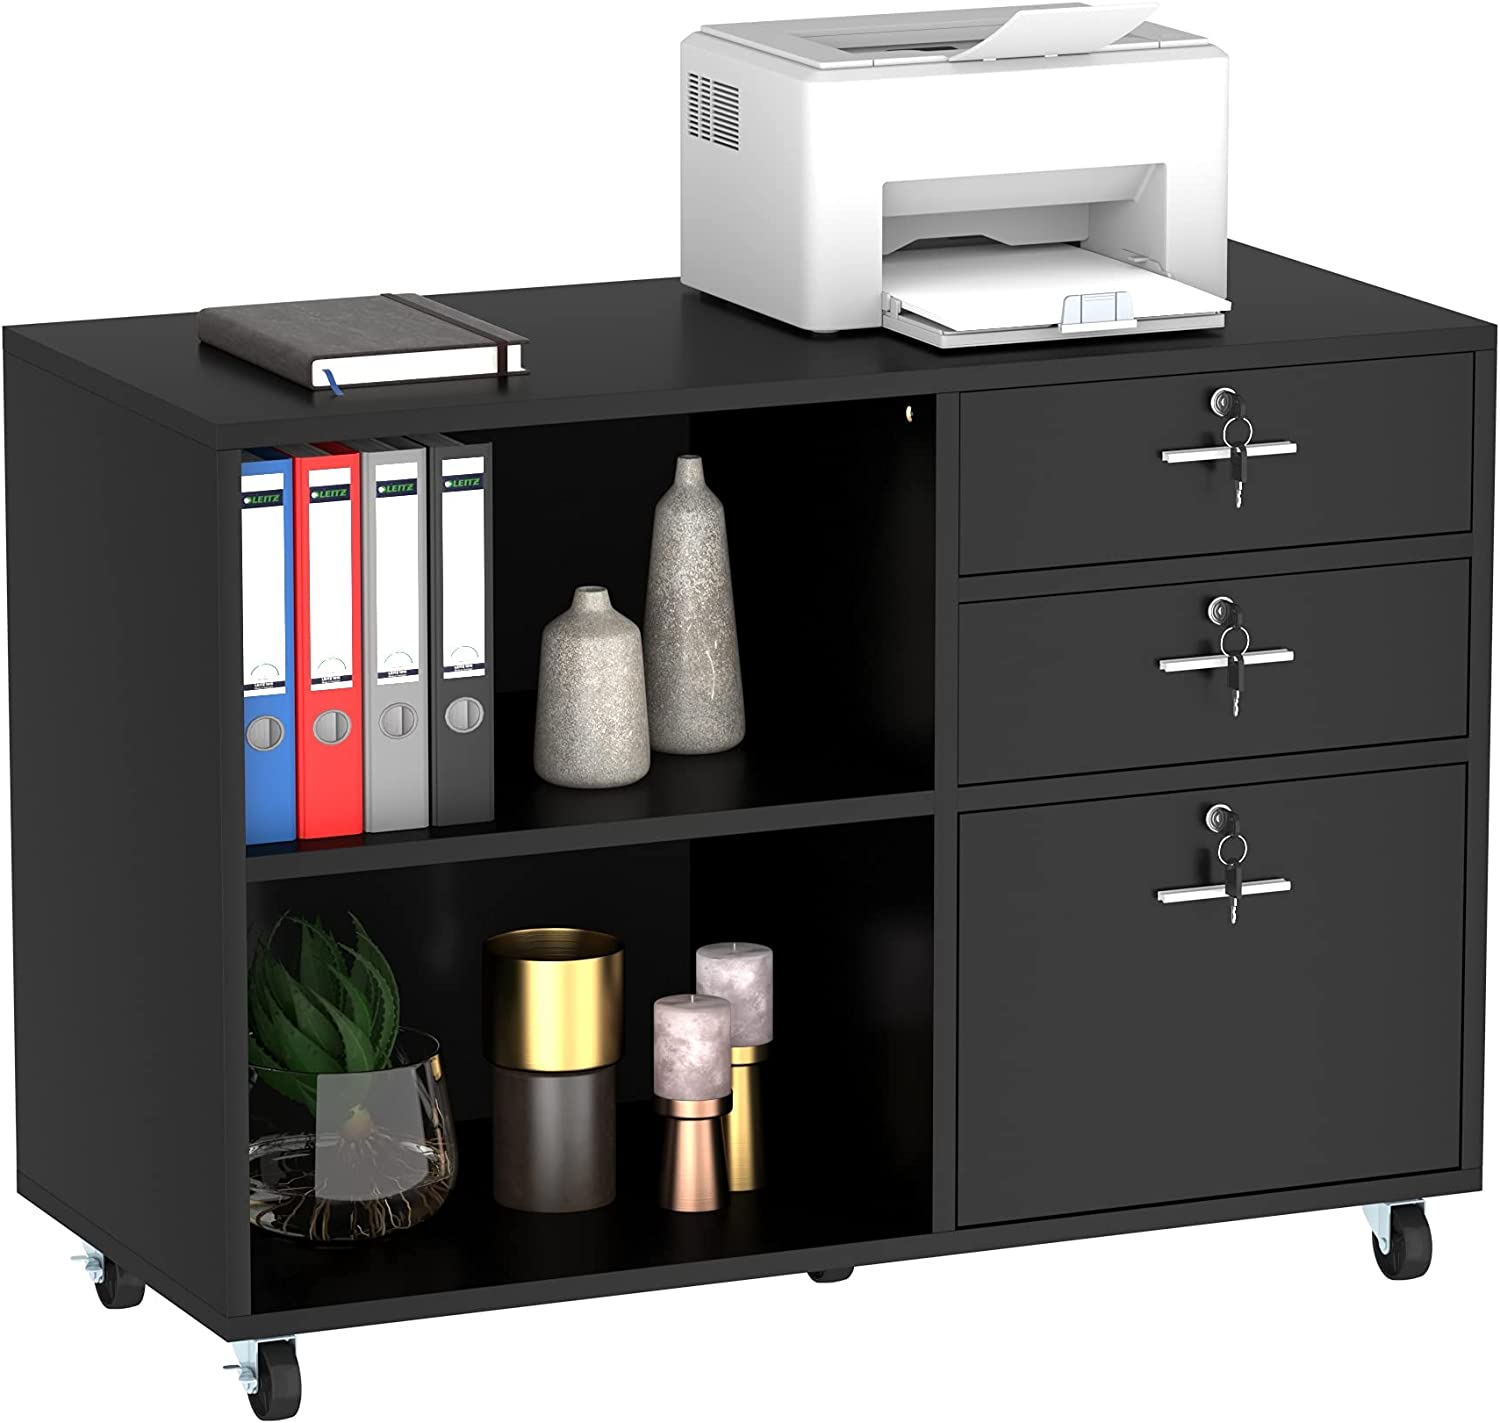 YITAHOME Wood File Cabinet, 3 Drawer Mobile Lateral Filing Cabinet, Storage Cabinet Printer Stand with 2 Open Shelves for Home Office Organization, Black